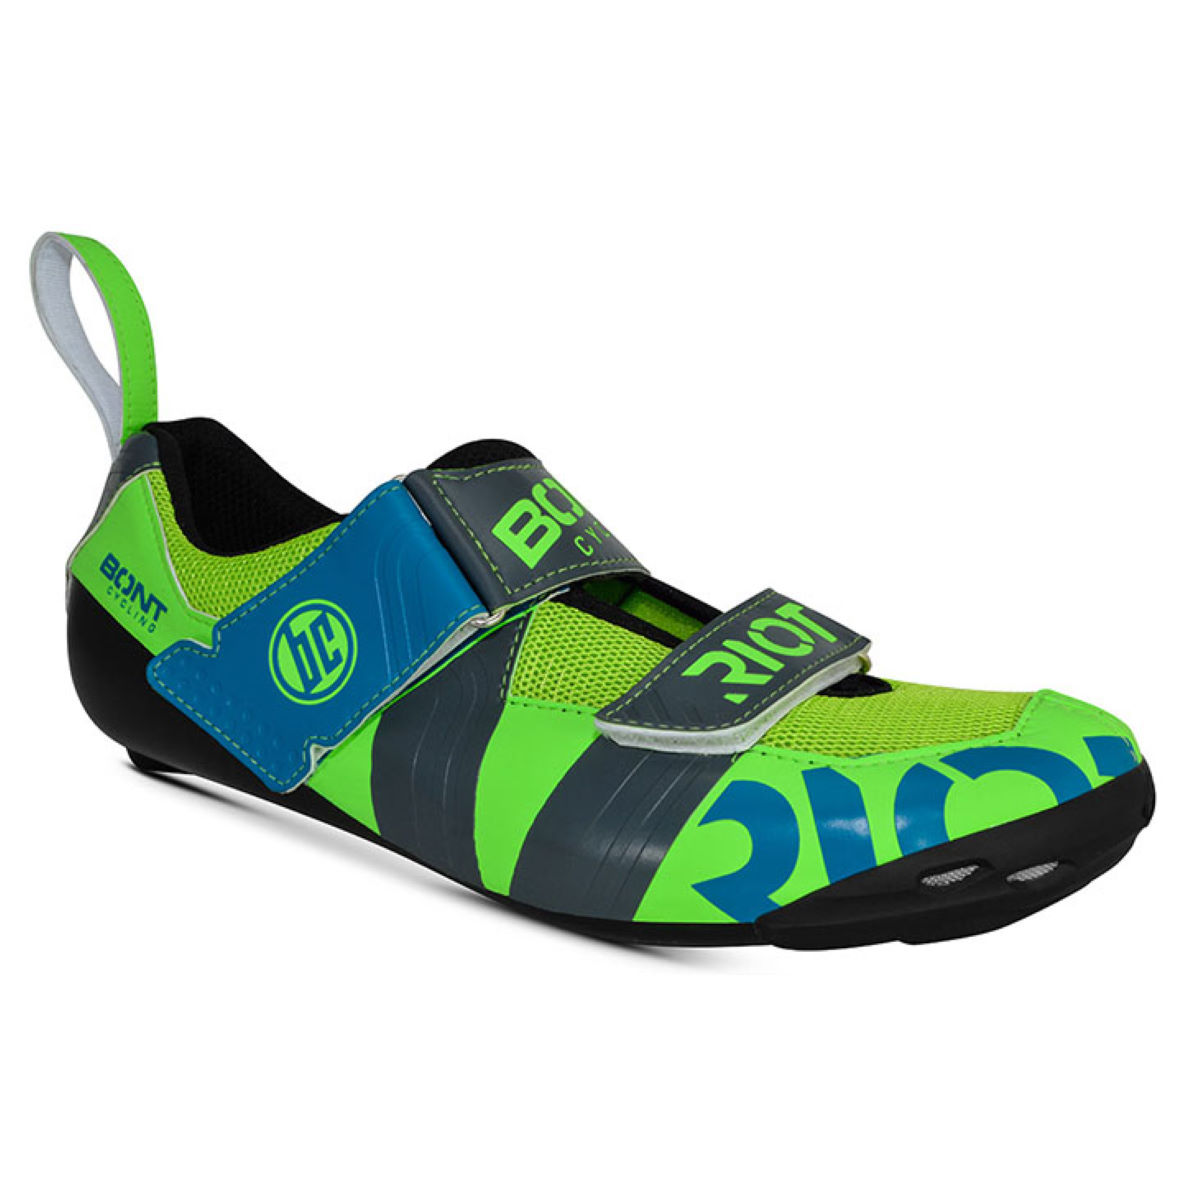 Chaussures de triathlon Bont Riot TR+ - EU 41 Lime/Charcoal